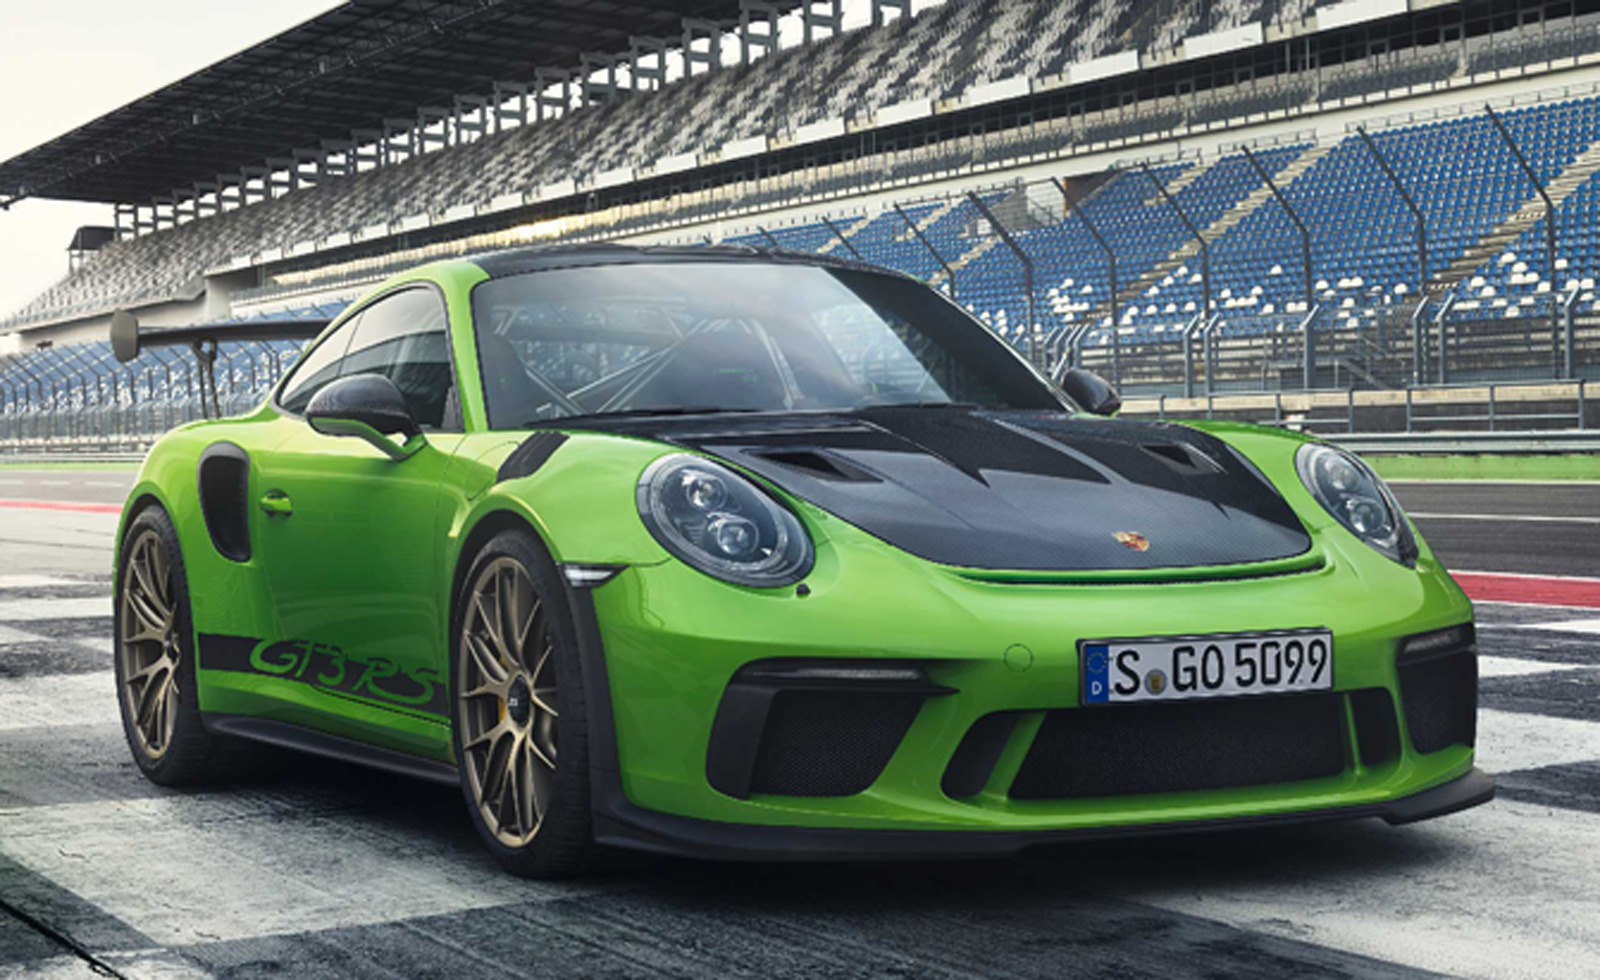 2018 porsche 911 gt3 rs delivers 520 naturally aspirated horsepower news. Black Bedroom Furniture Sets. Home Design Ideas